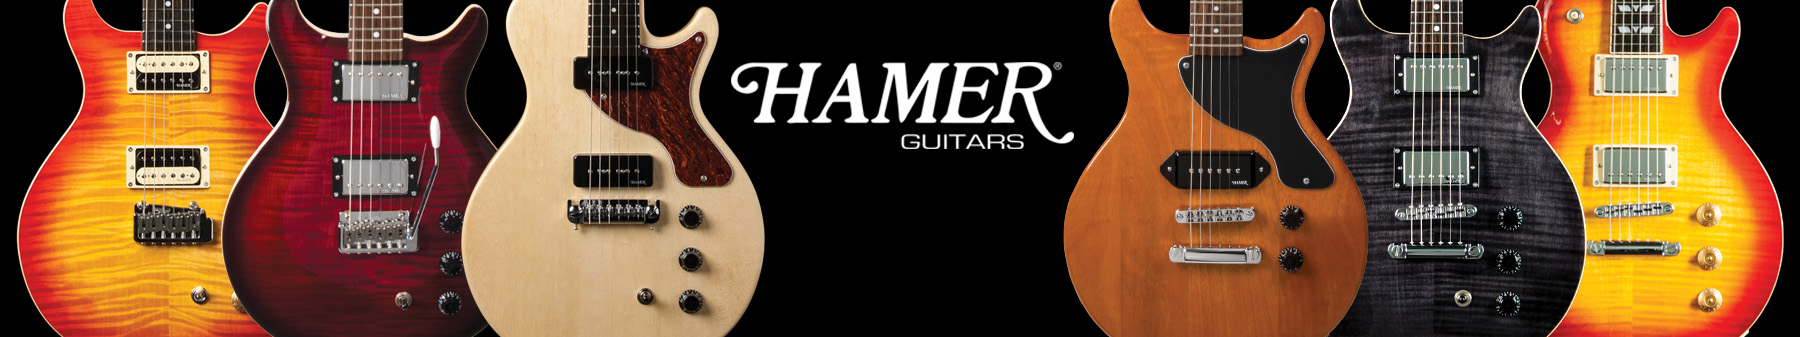 Hamer Guitars Models